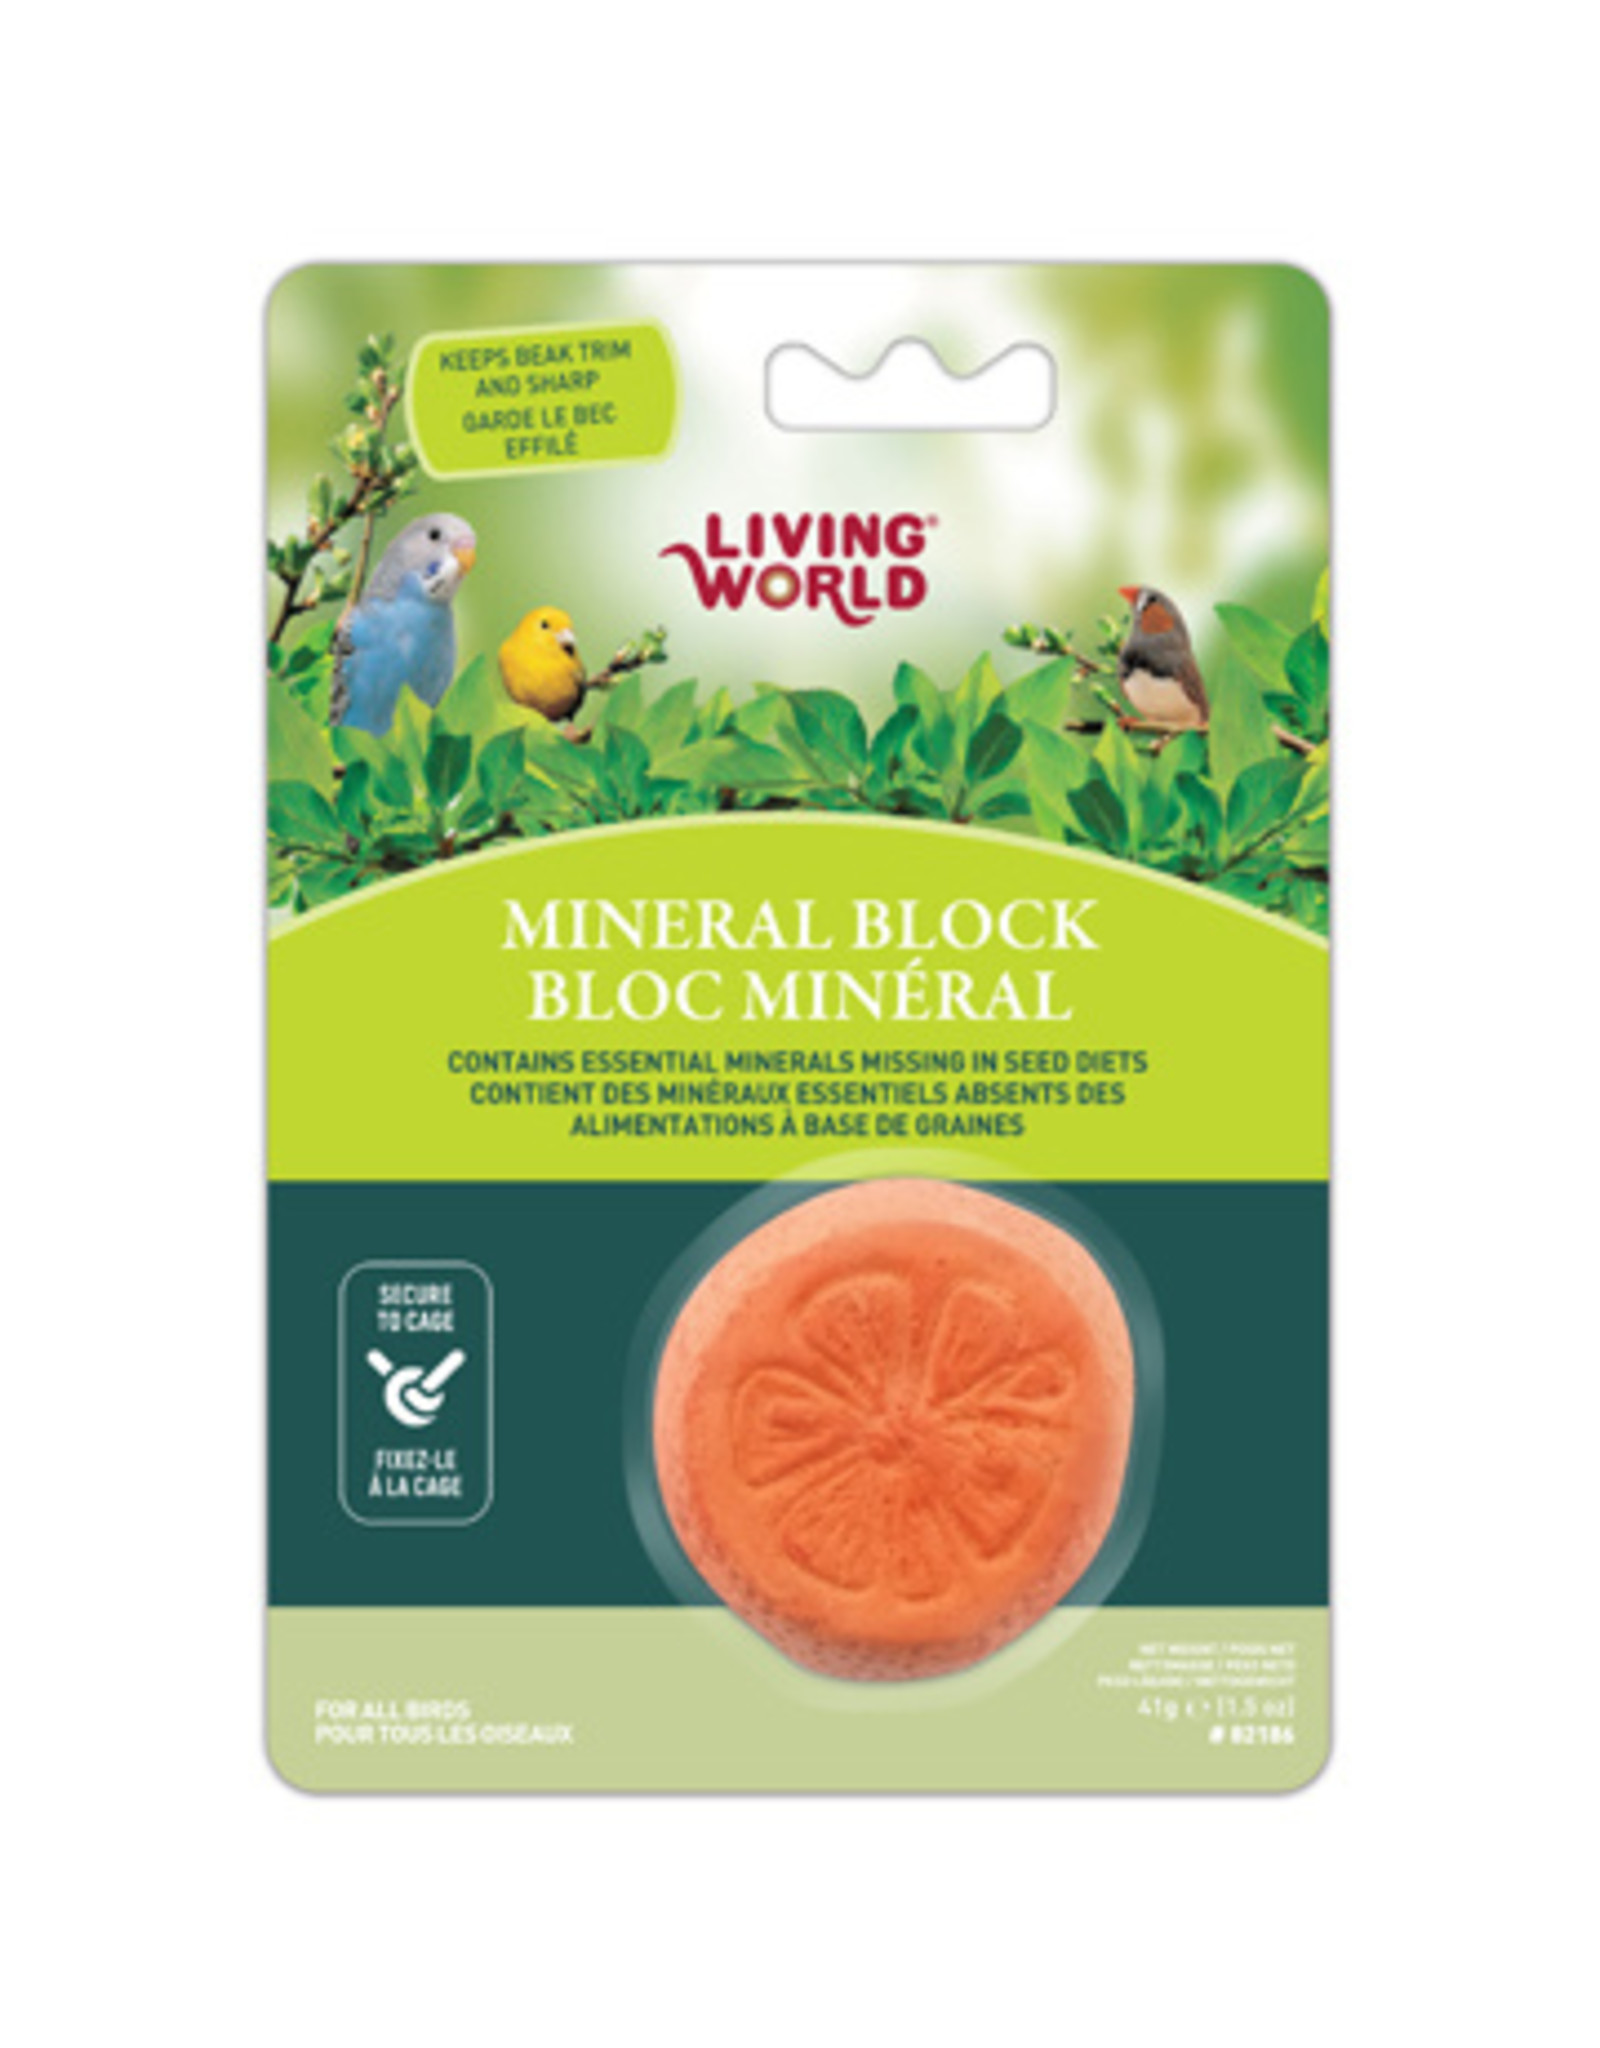 Living World Living World Orange-Shaped Mineral Block for Birds - 41 g (1.5 oz)